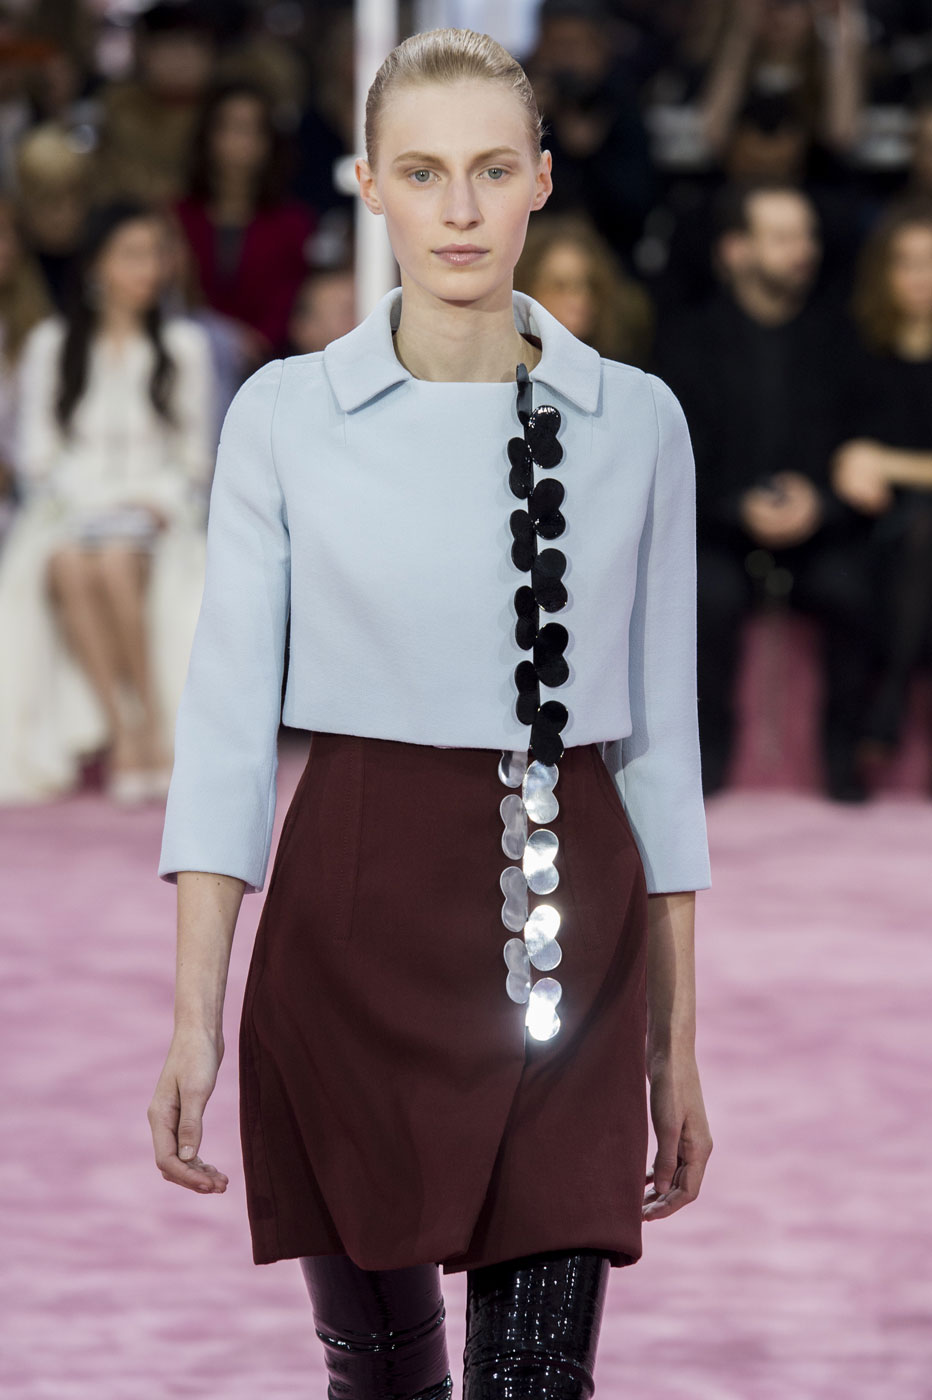 Christian-Dior-fashion-runway-show-haute-couture-paris-spring-summer-2015-the-impression-016